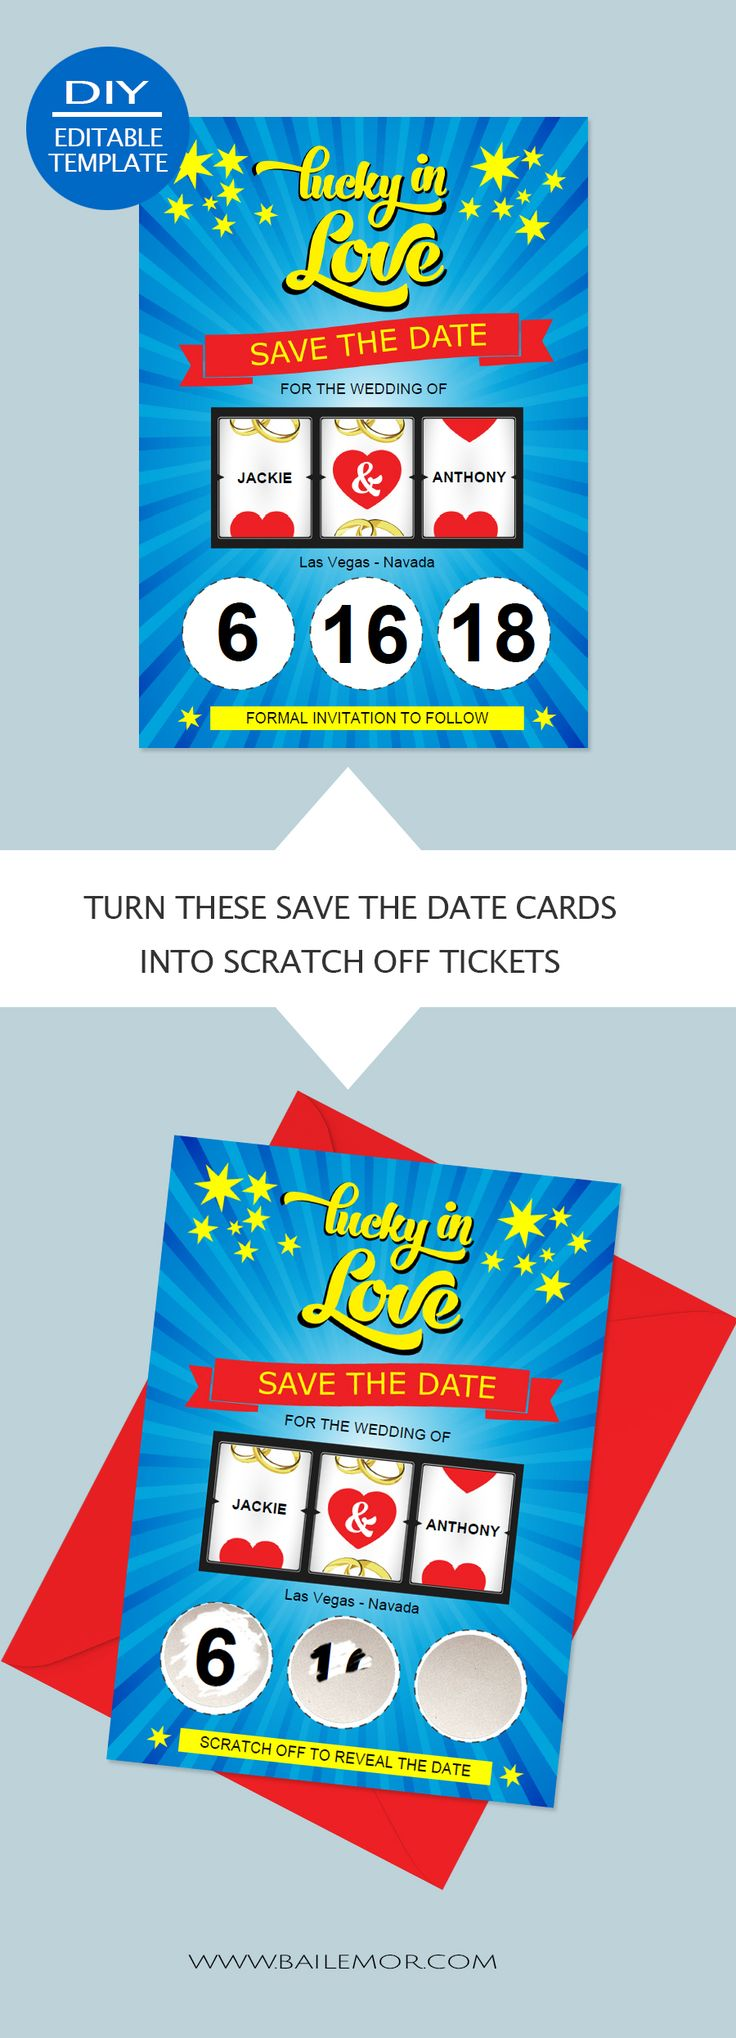 48 best wedding invitation templates images on pinterest wedding save the date scratch off cards wedding invitation engagement announcement lottery tickets printable template lil 01 stopboris Choice Image